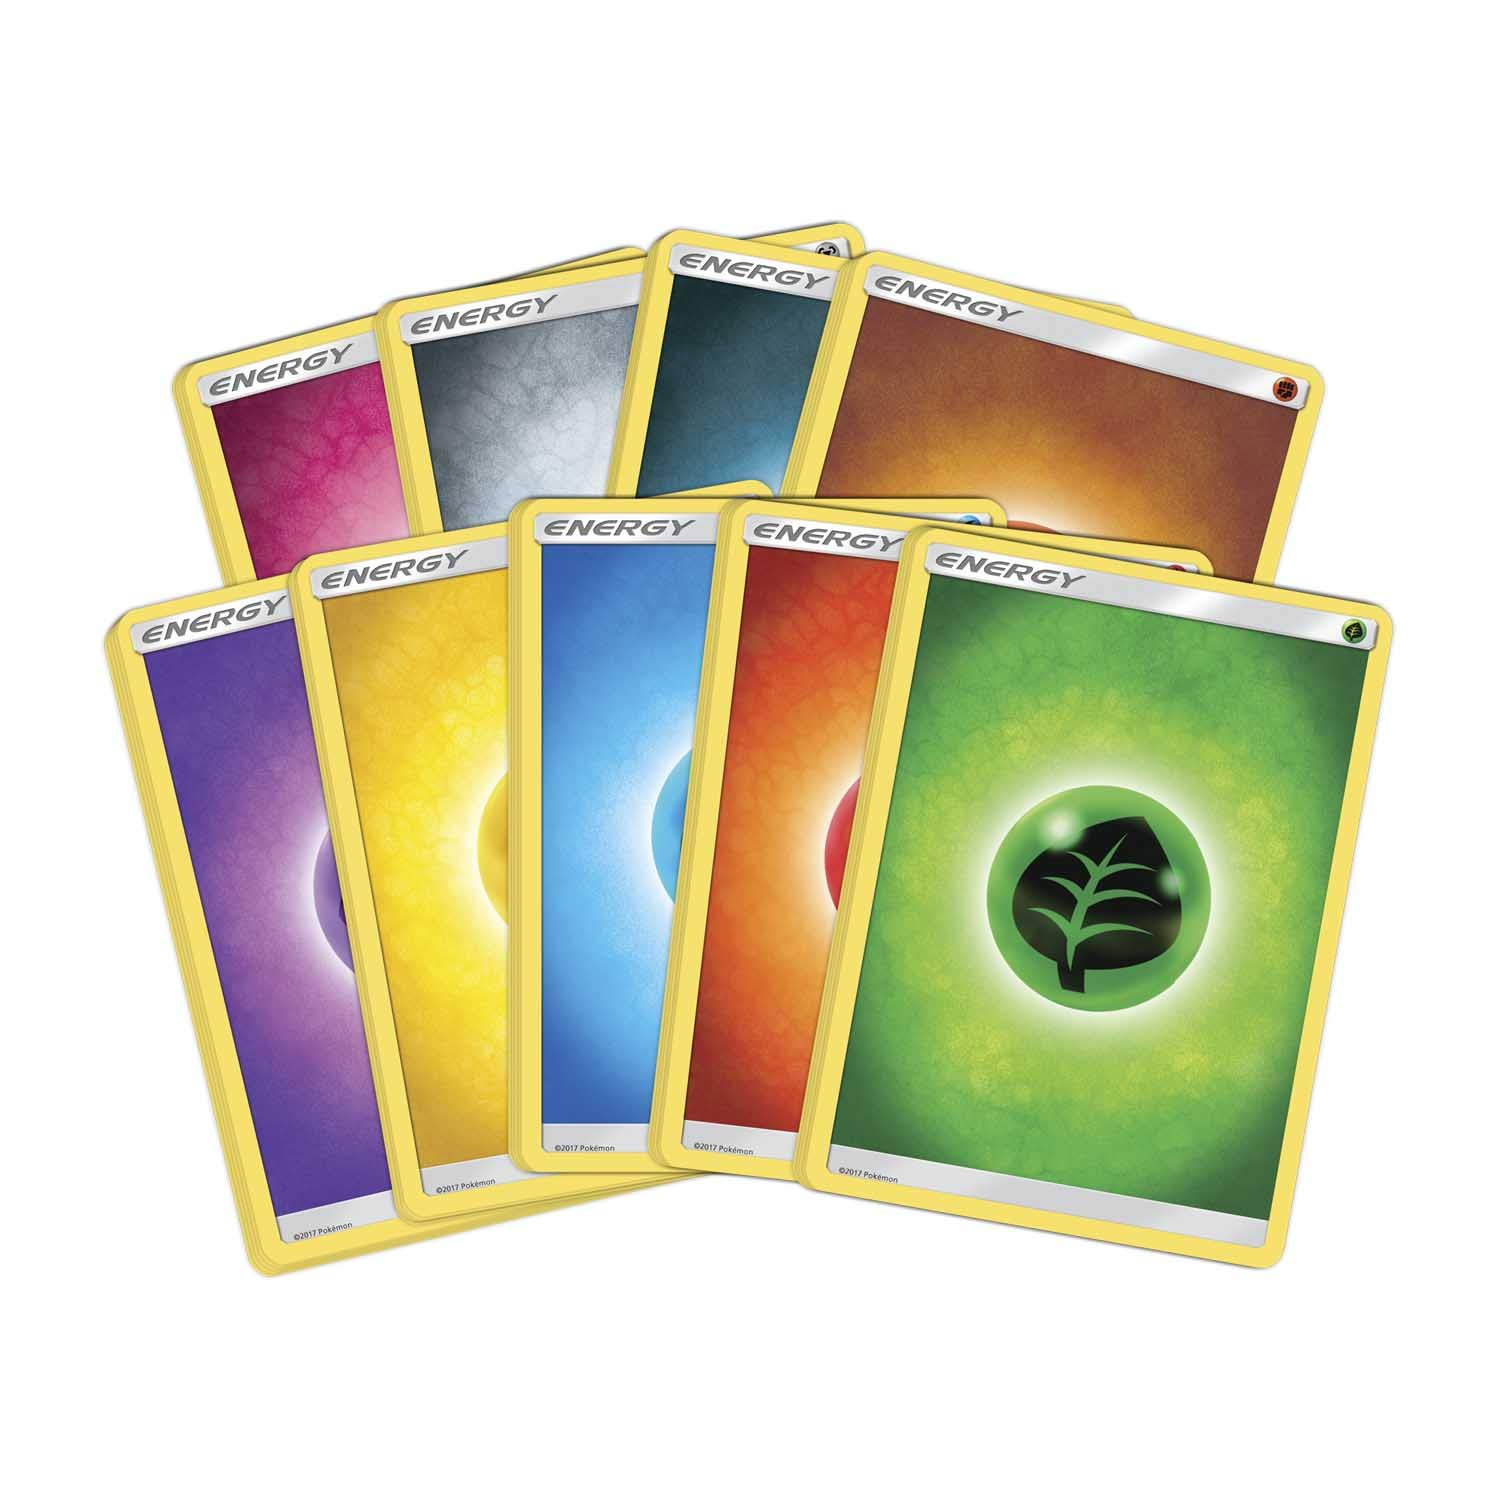 Pokémon 820650804502  Sun & Moon Elite Trainer Celestial Storm Box, Trading Card Game, Dice, Competition Coin & More by Pokemon (Image #8)